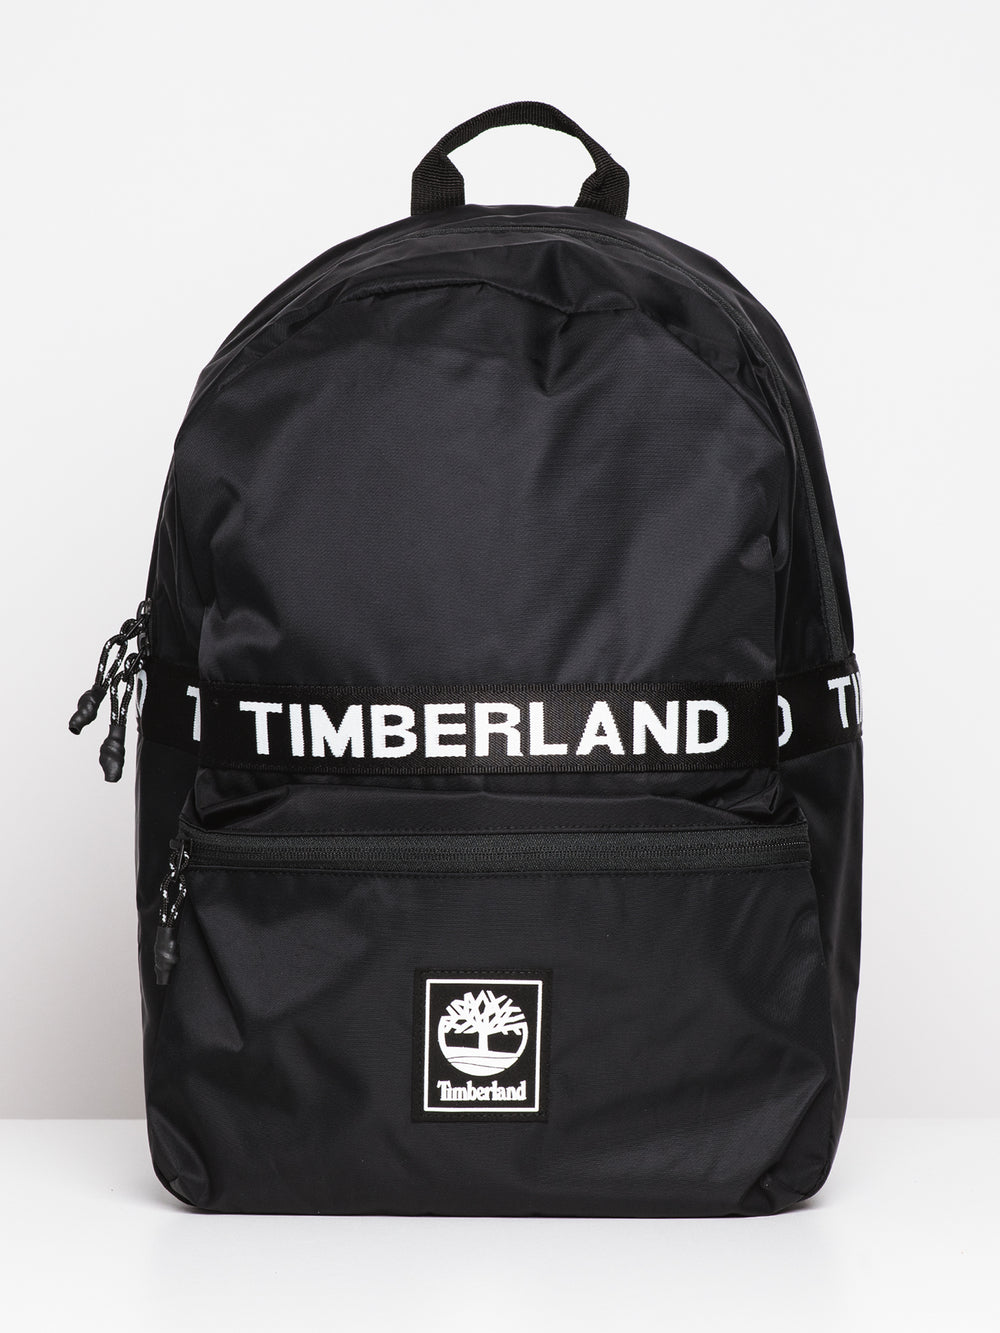 TIMBERLAND 25L BACKPACK - BLACK